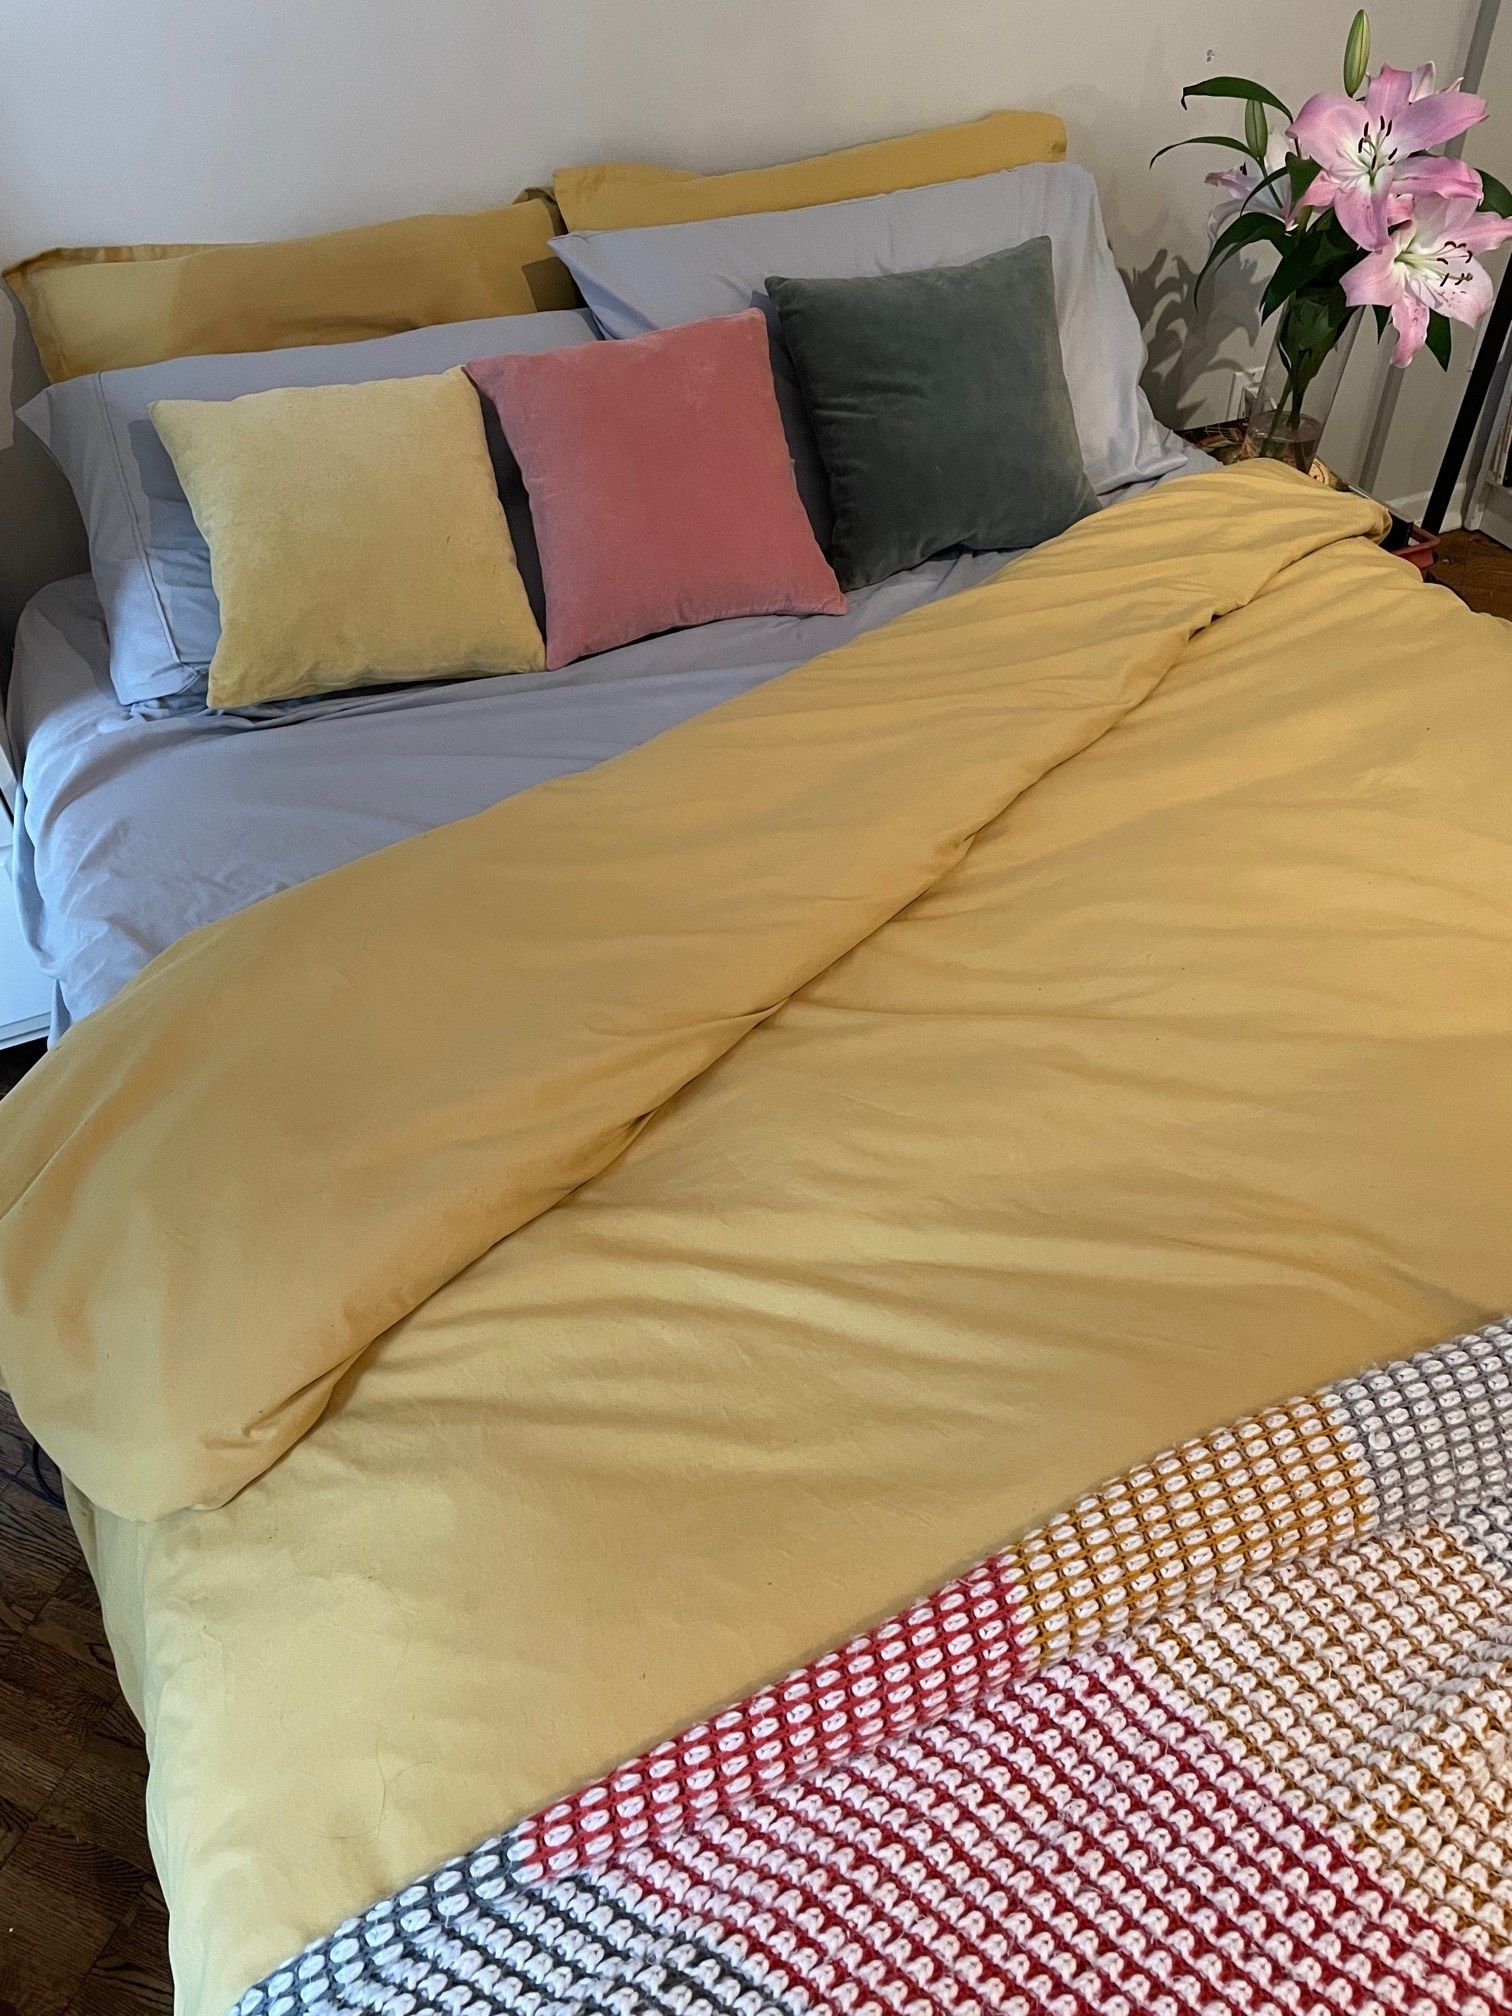 A cozy bed showing off the duvet and pillows